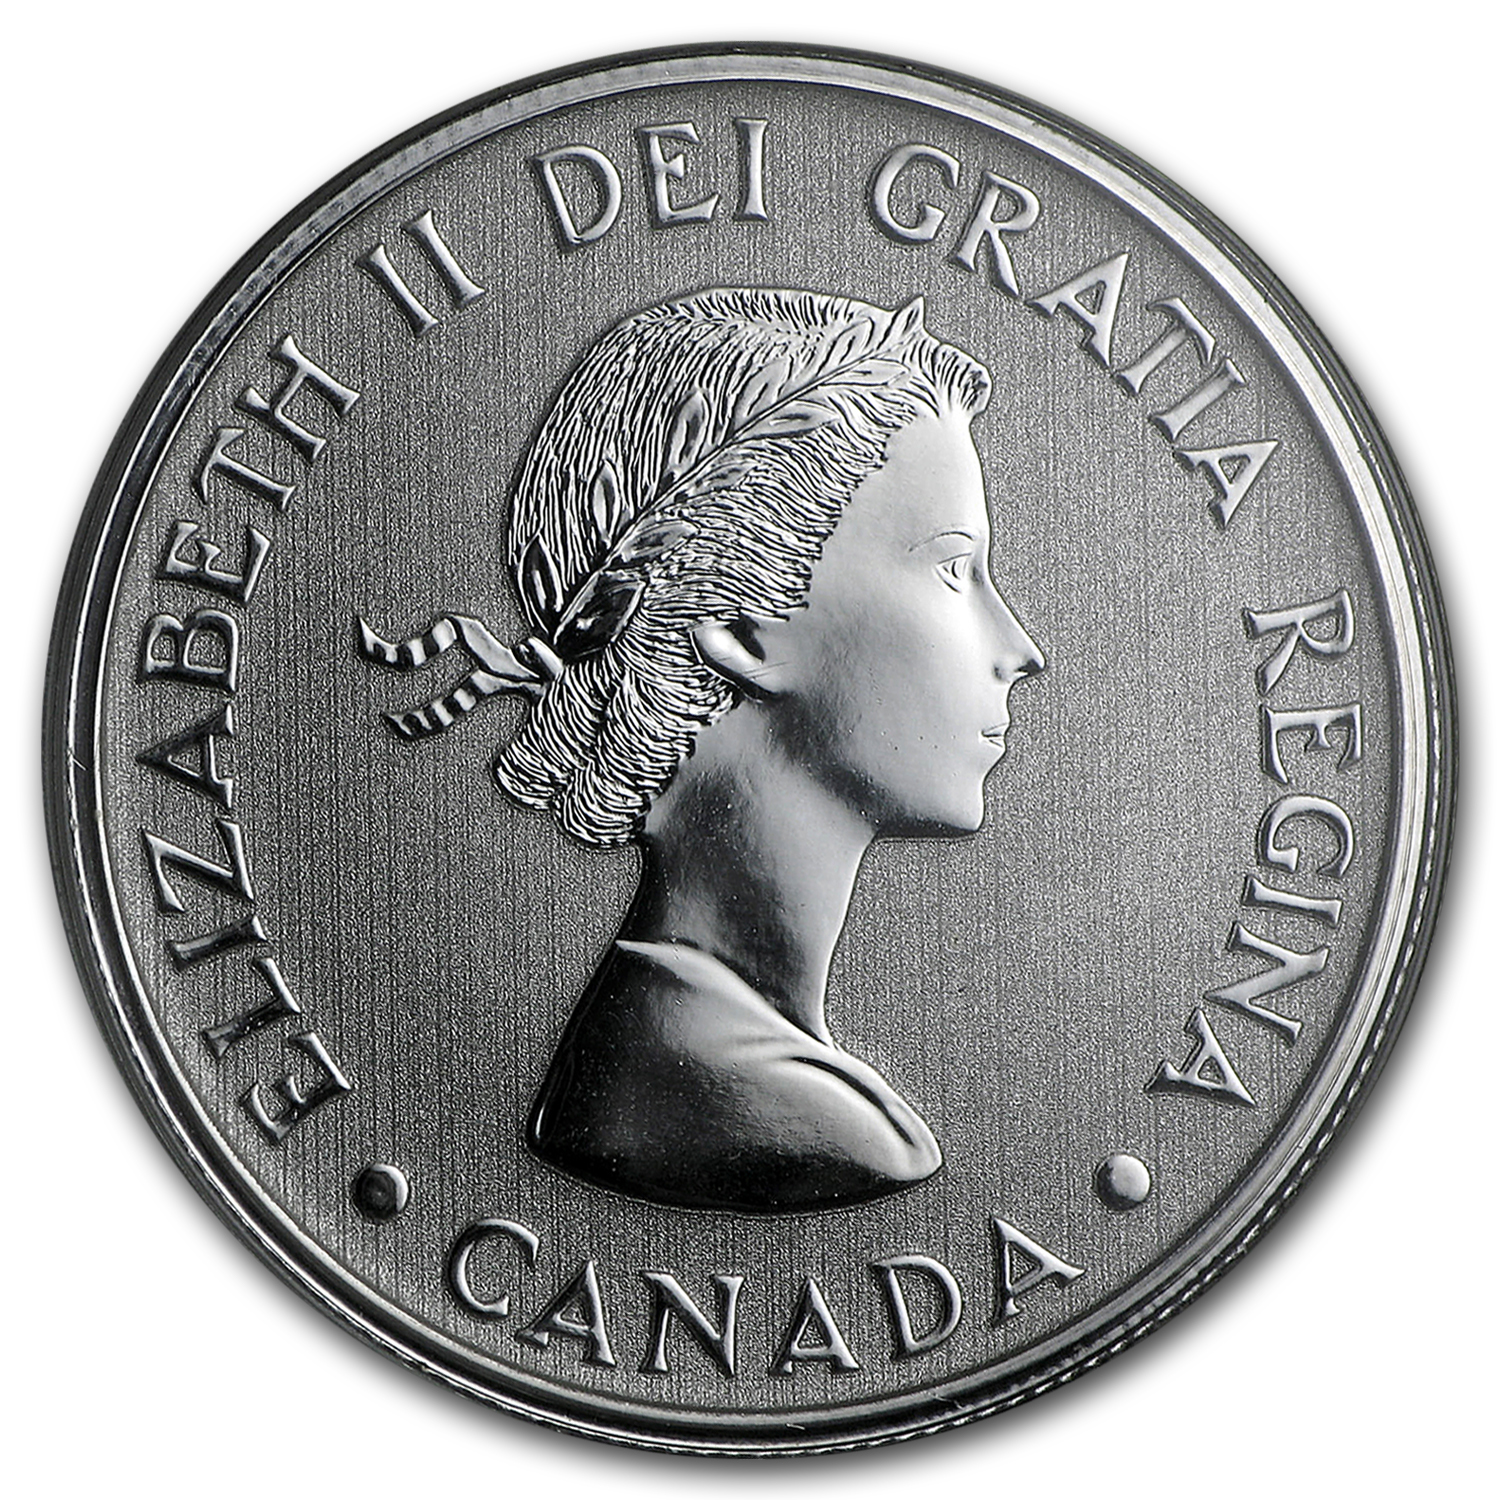 2012 1/4 oz Silver Canadian $20 Queen's Diamond Jubilee